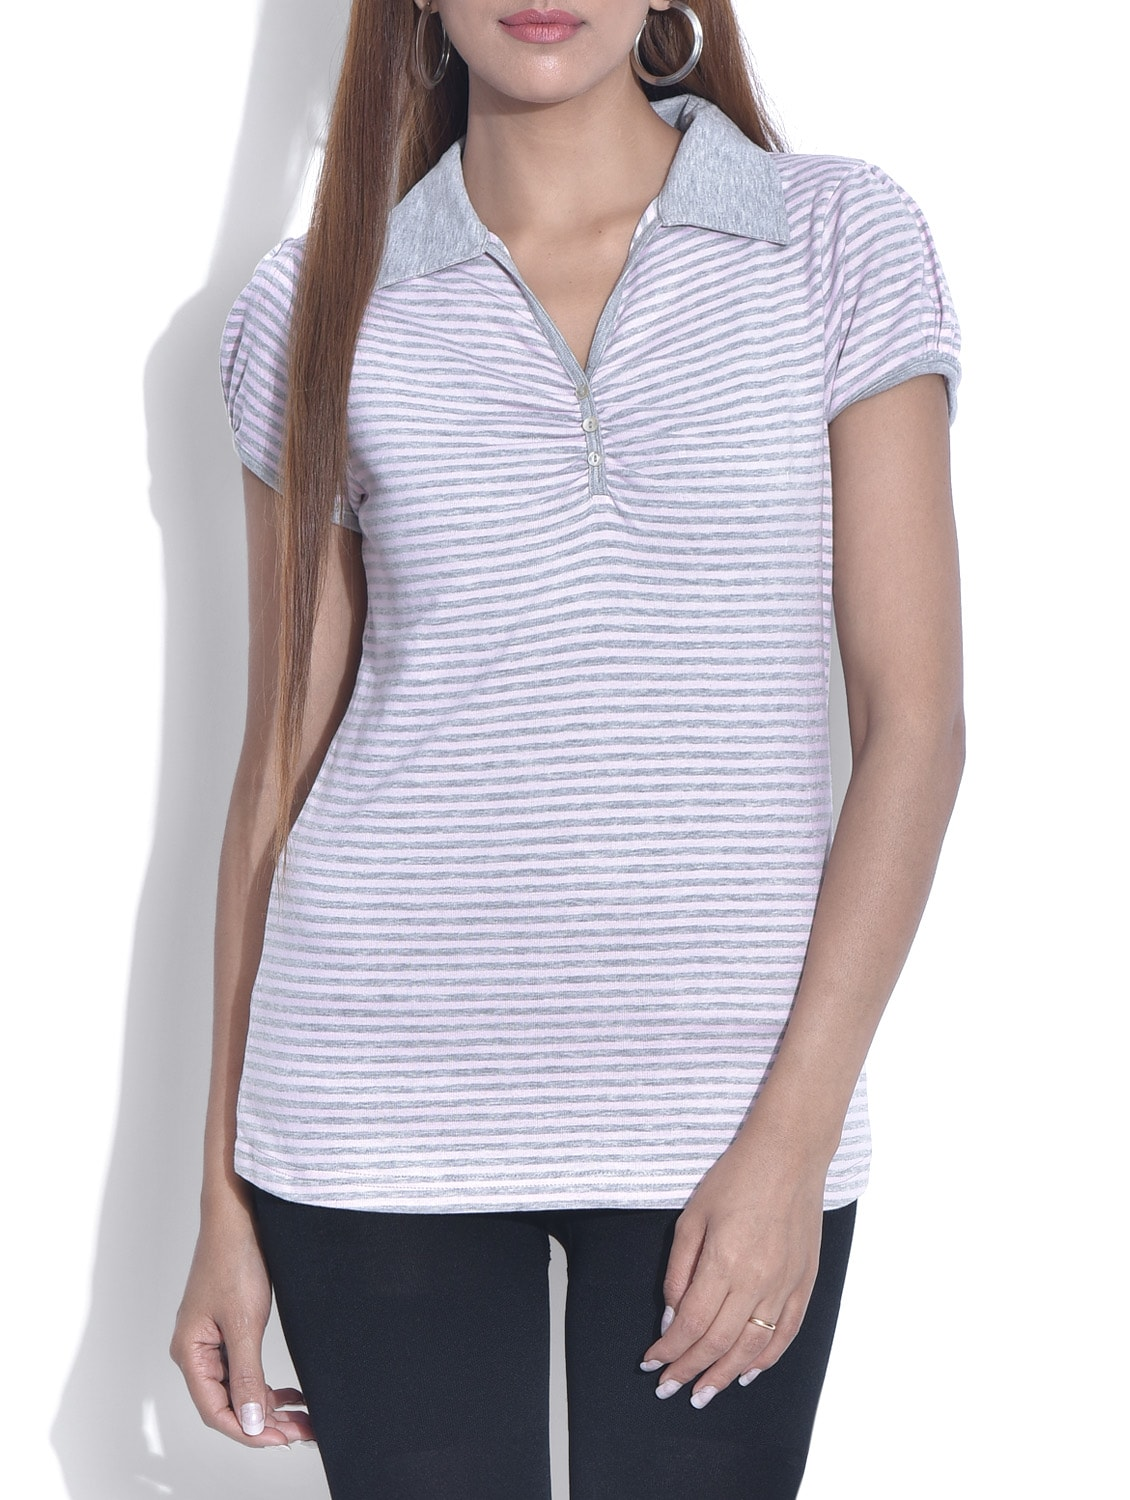 White And Grey Striped Knitted Cotton Top - By